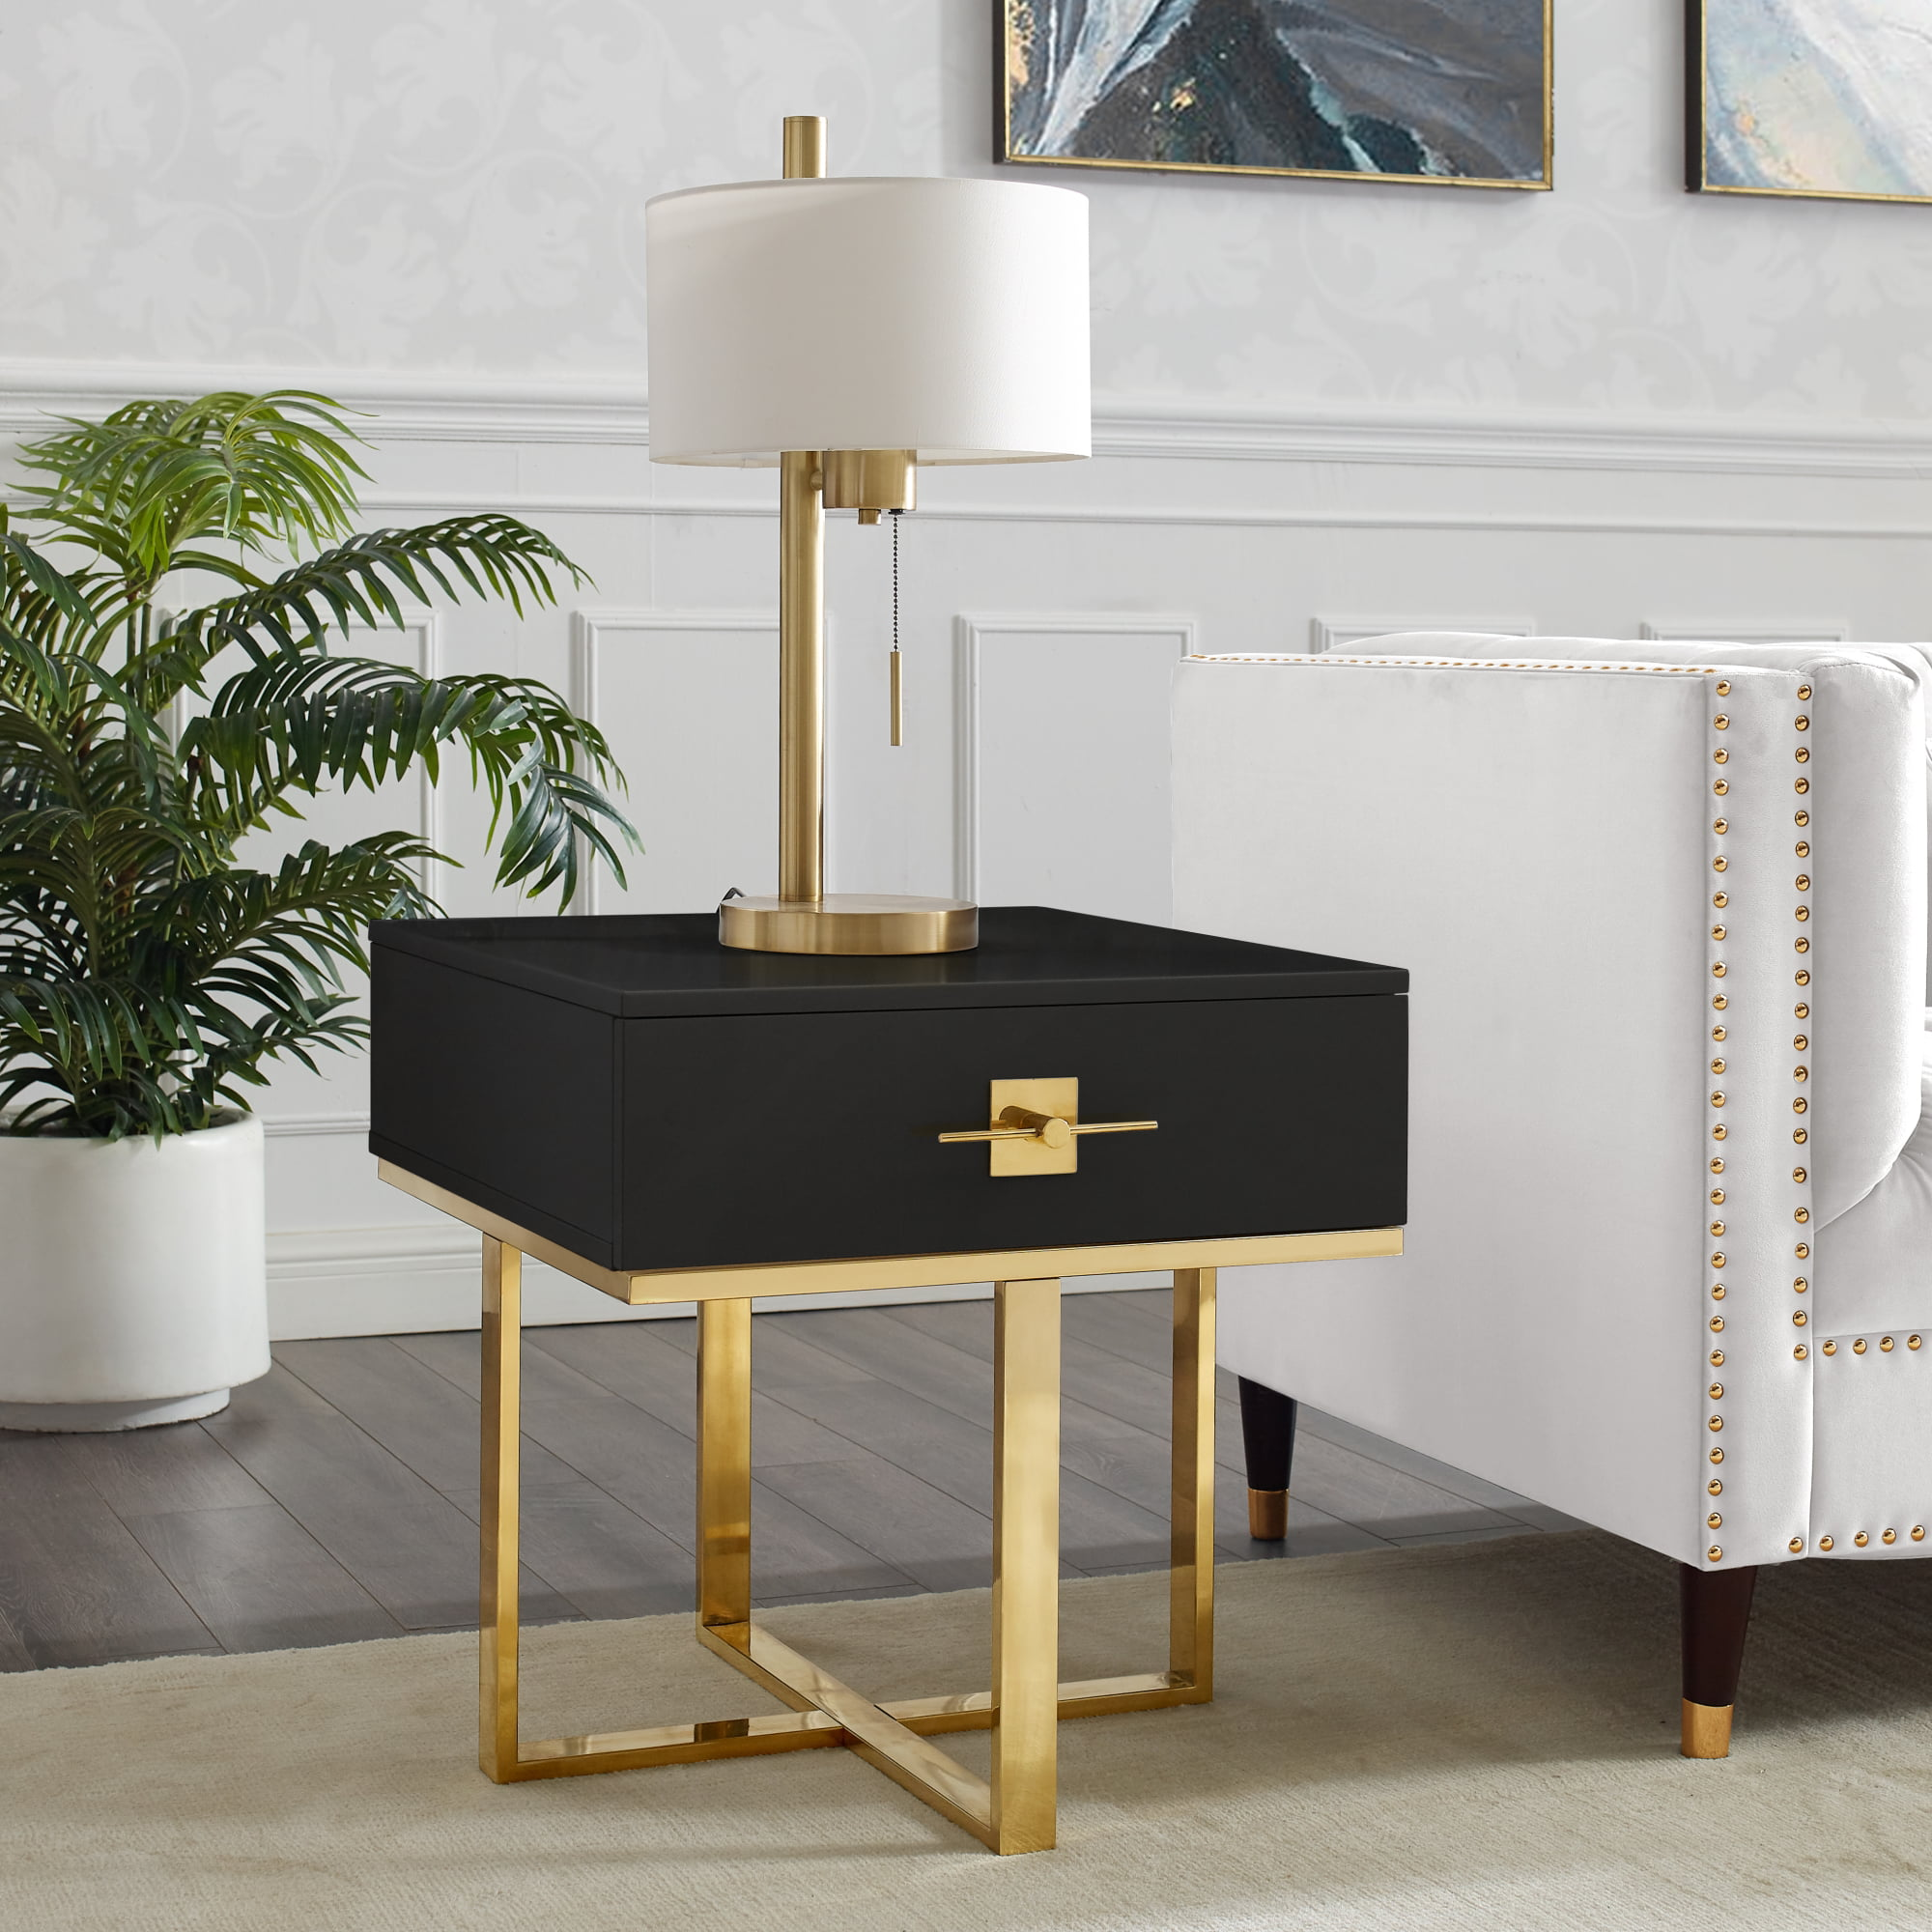 Nicole Miller Meli Side Table End Table Nightstand 1 Drawer Hight Gloss Lacquer Finish Polished Stainless Steel Base Black Gold Walmart Com Walmart Com